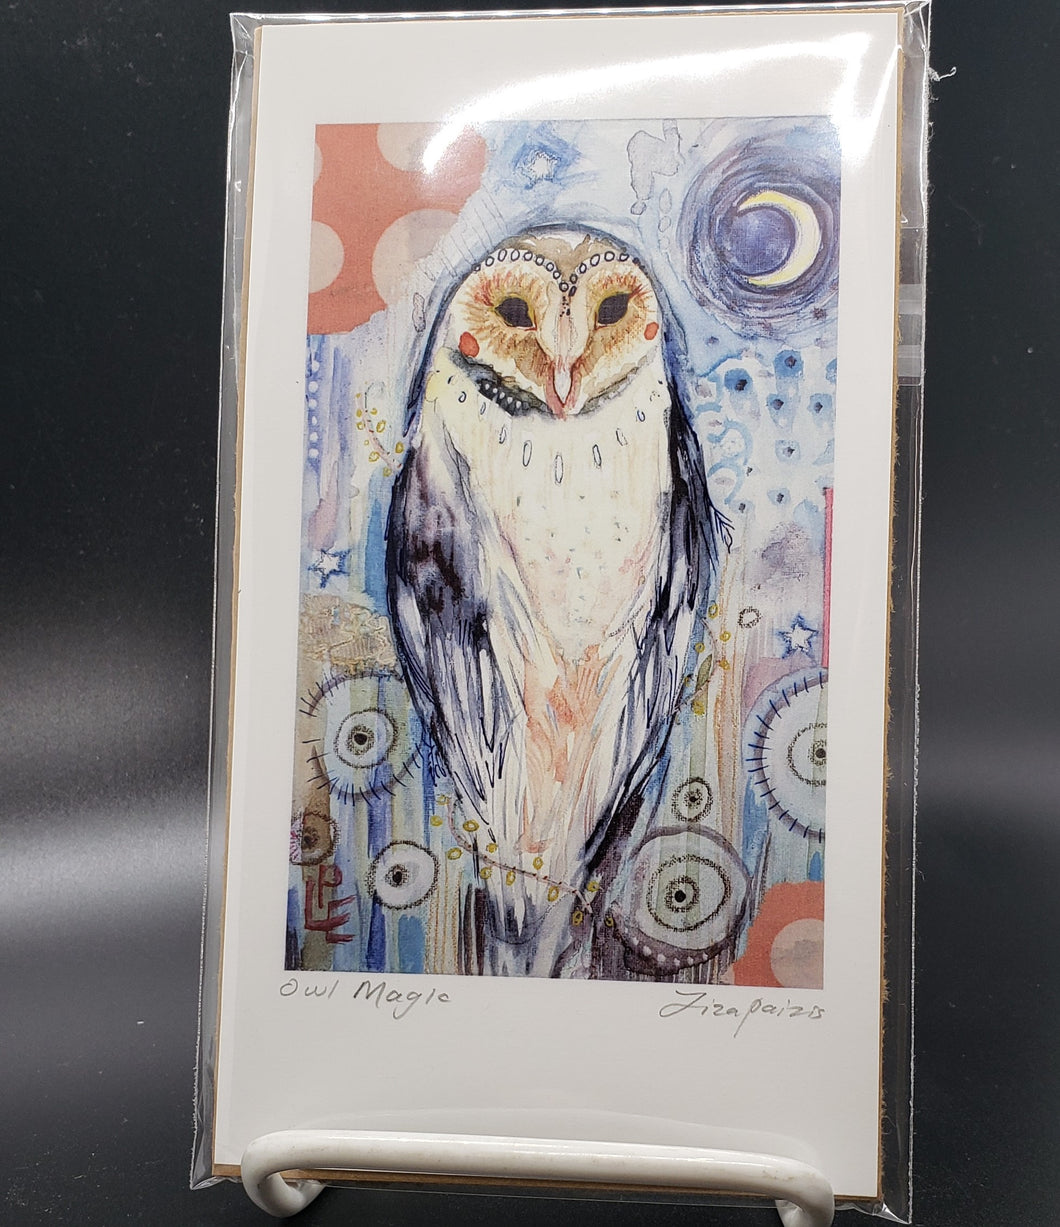 Liza Paizis 'Owl Magic' Print